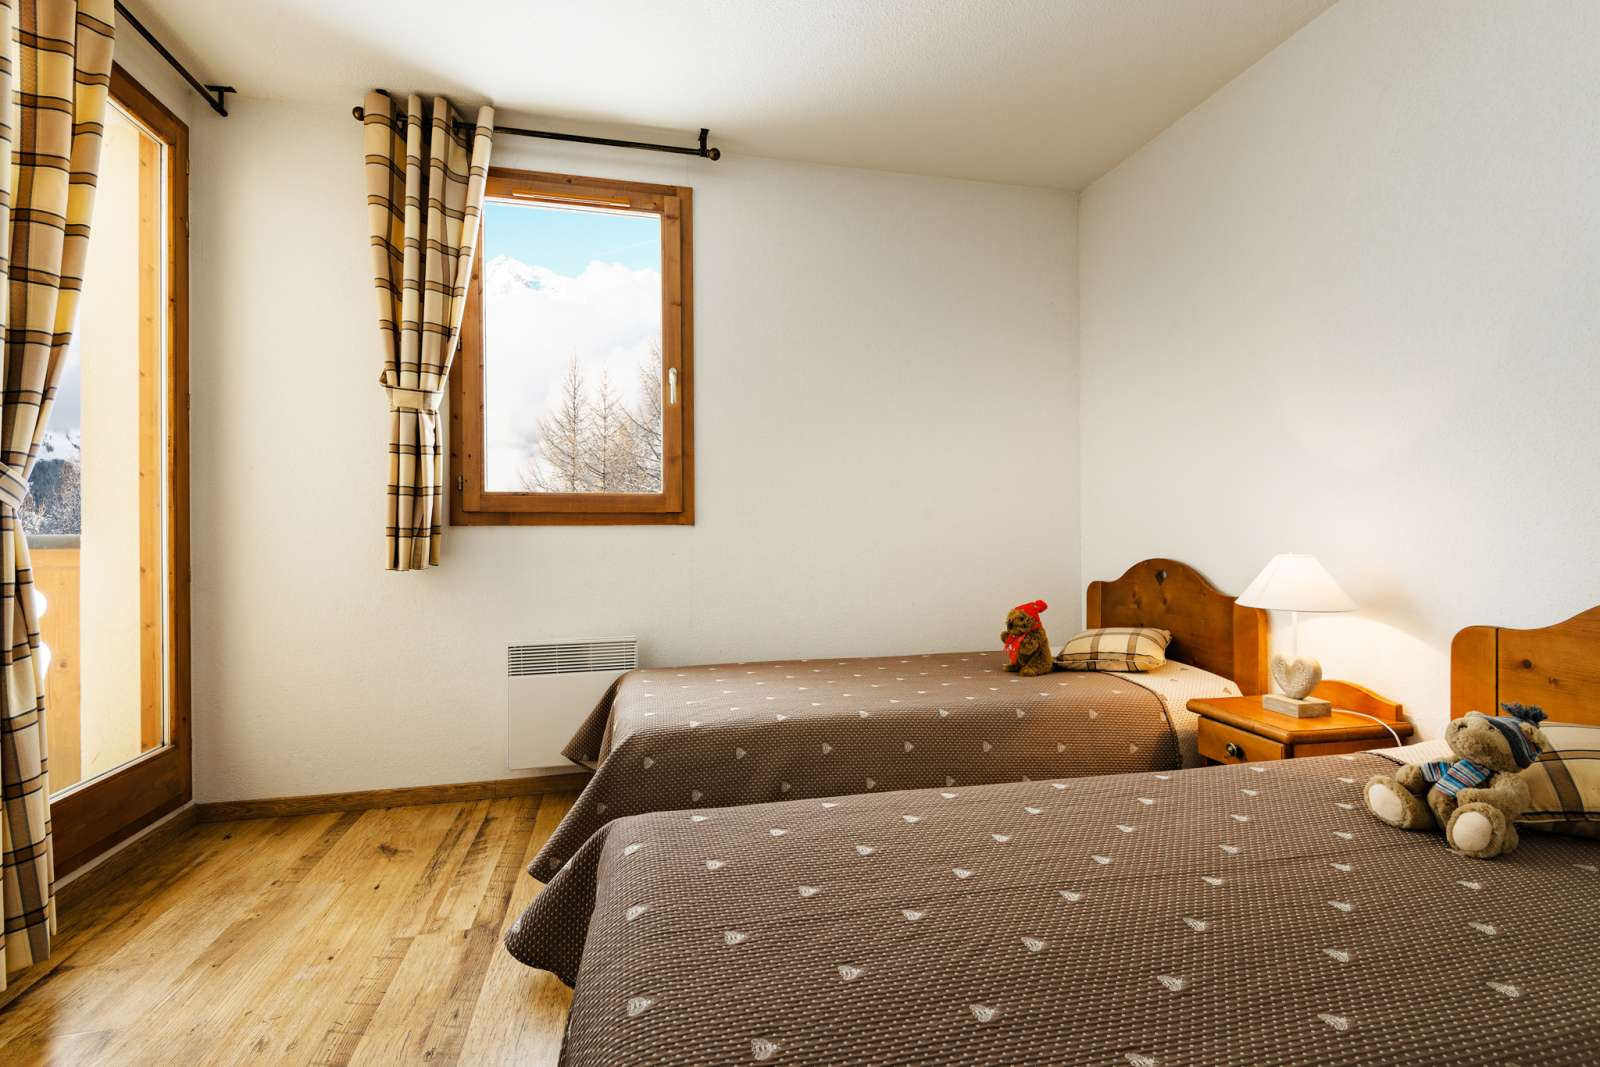 Arollaie, Peisey Vallandry (self catered apartments) - Twin bedroom